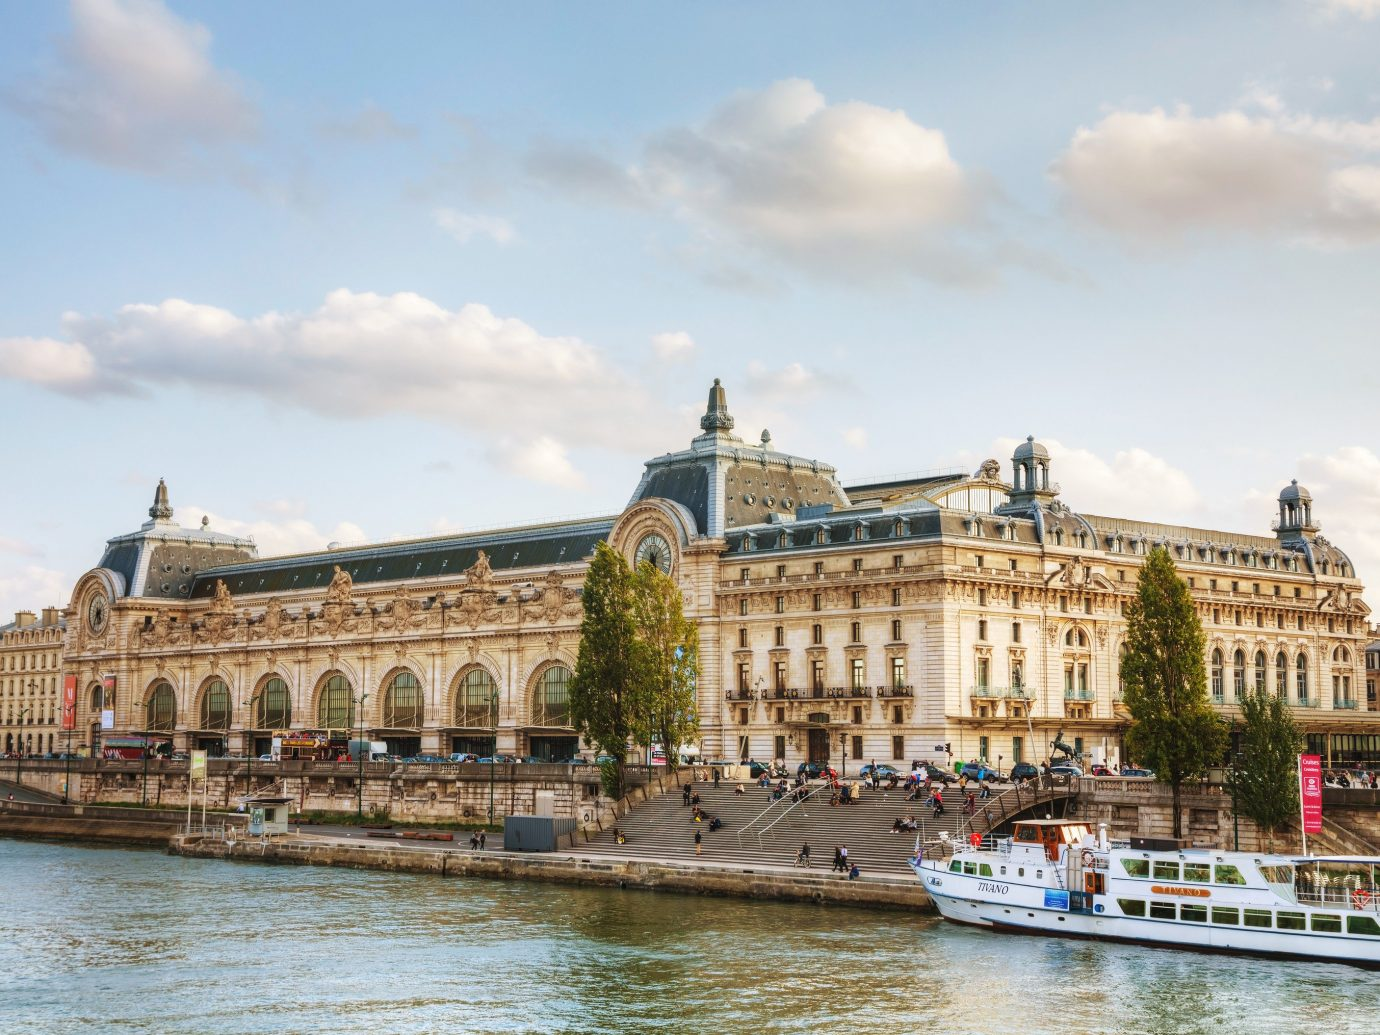 Exterior of Musee d'Orsay